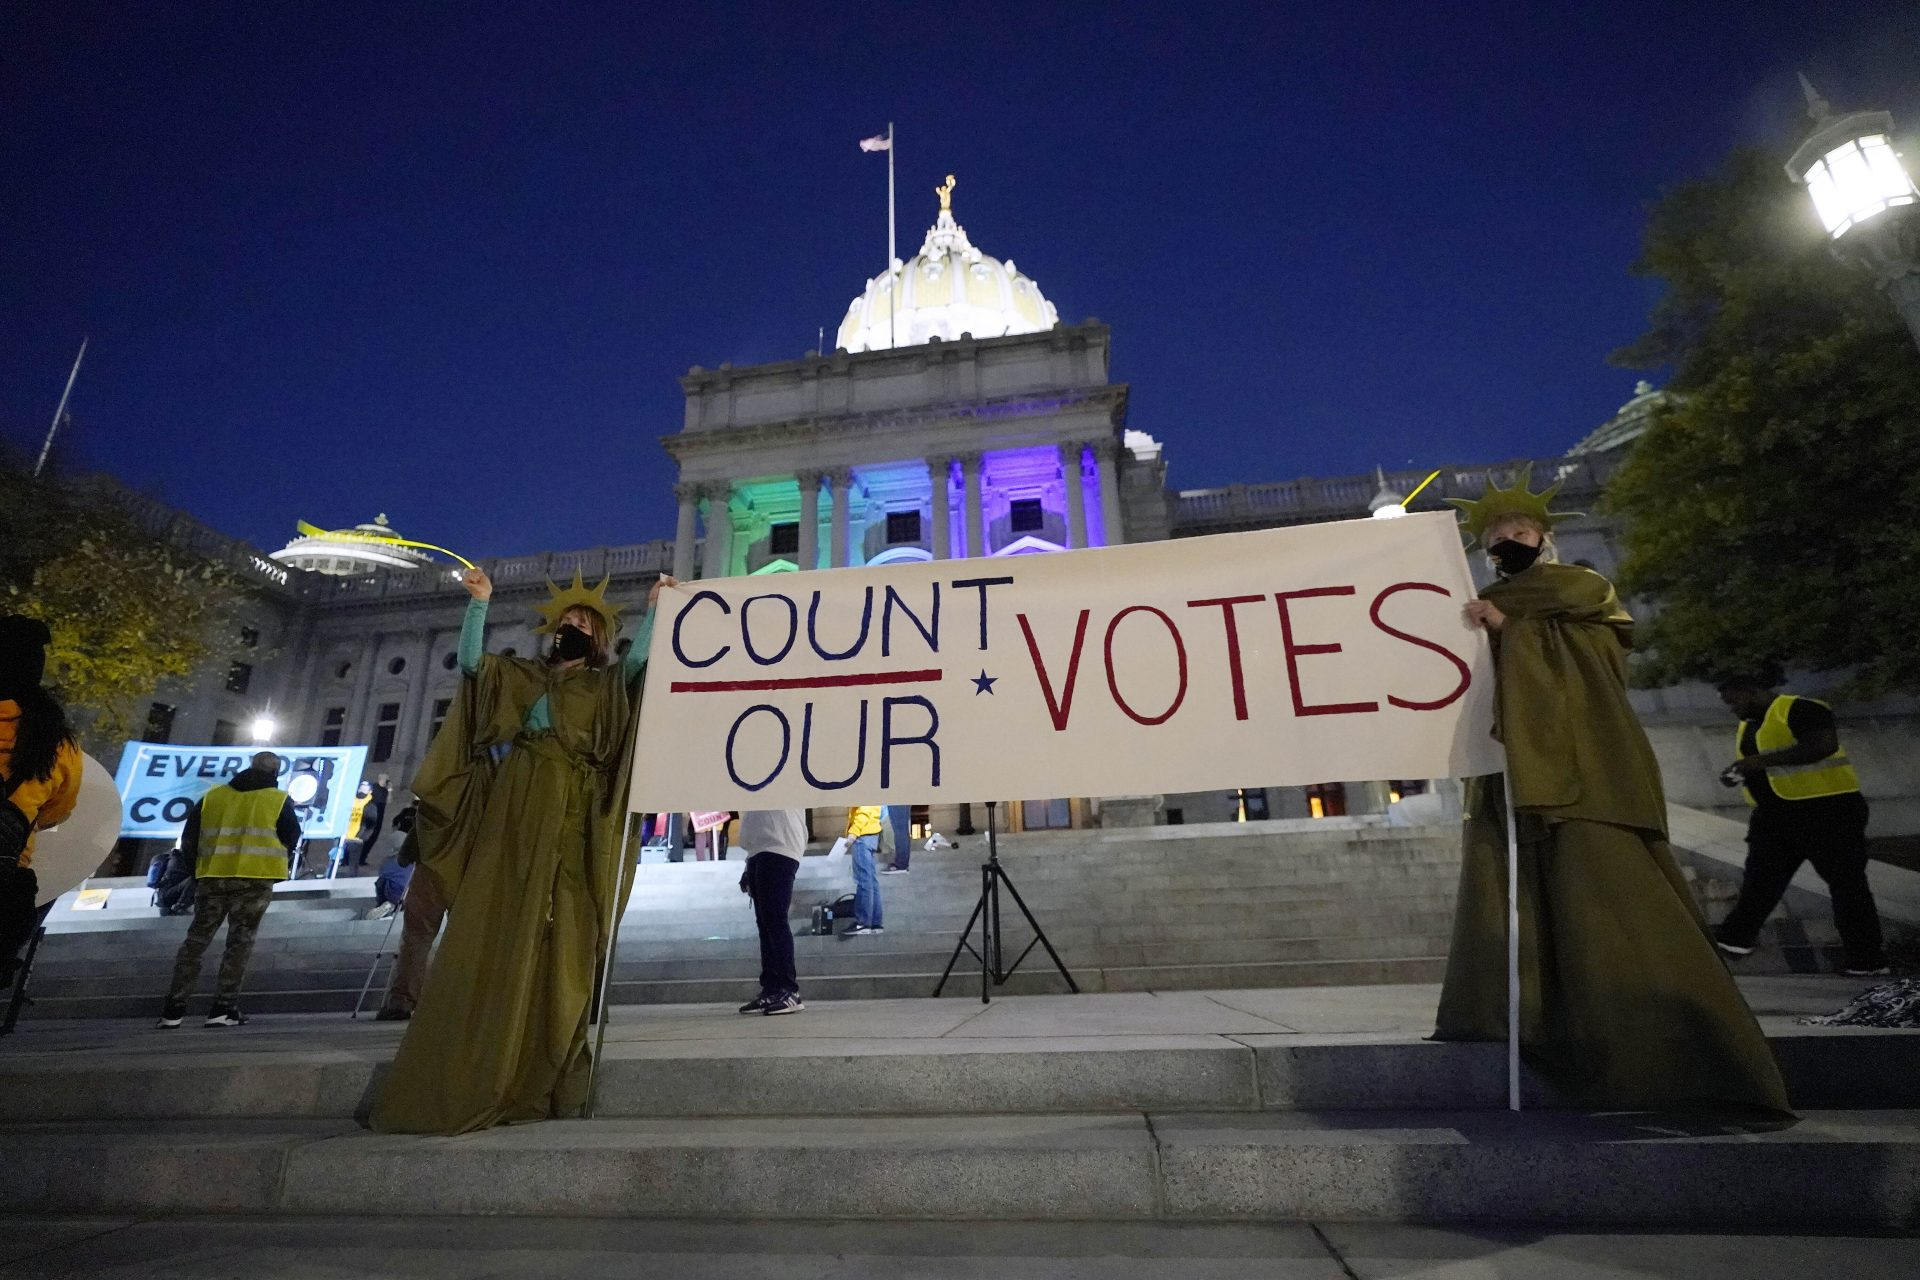 People demonstrate outside the Pennsylvania State Capitol to urge that all votes be counted, Wednesday, Nov. 4, 2020, in Harrisburg, Pa., following Tuesday's election.